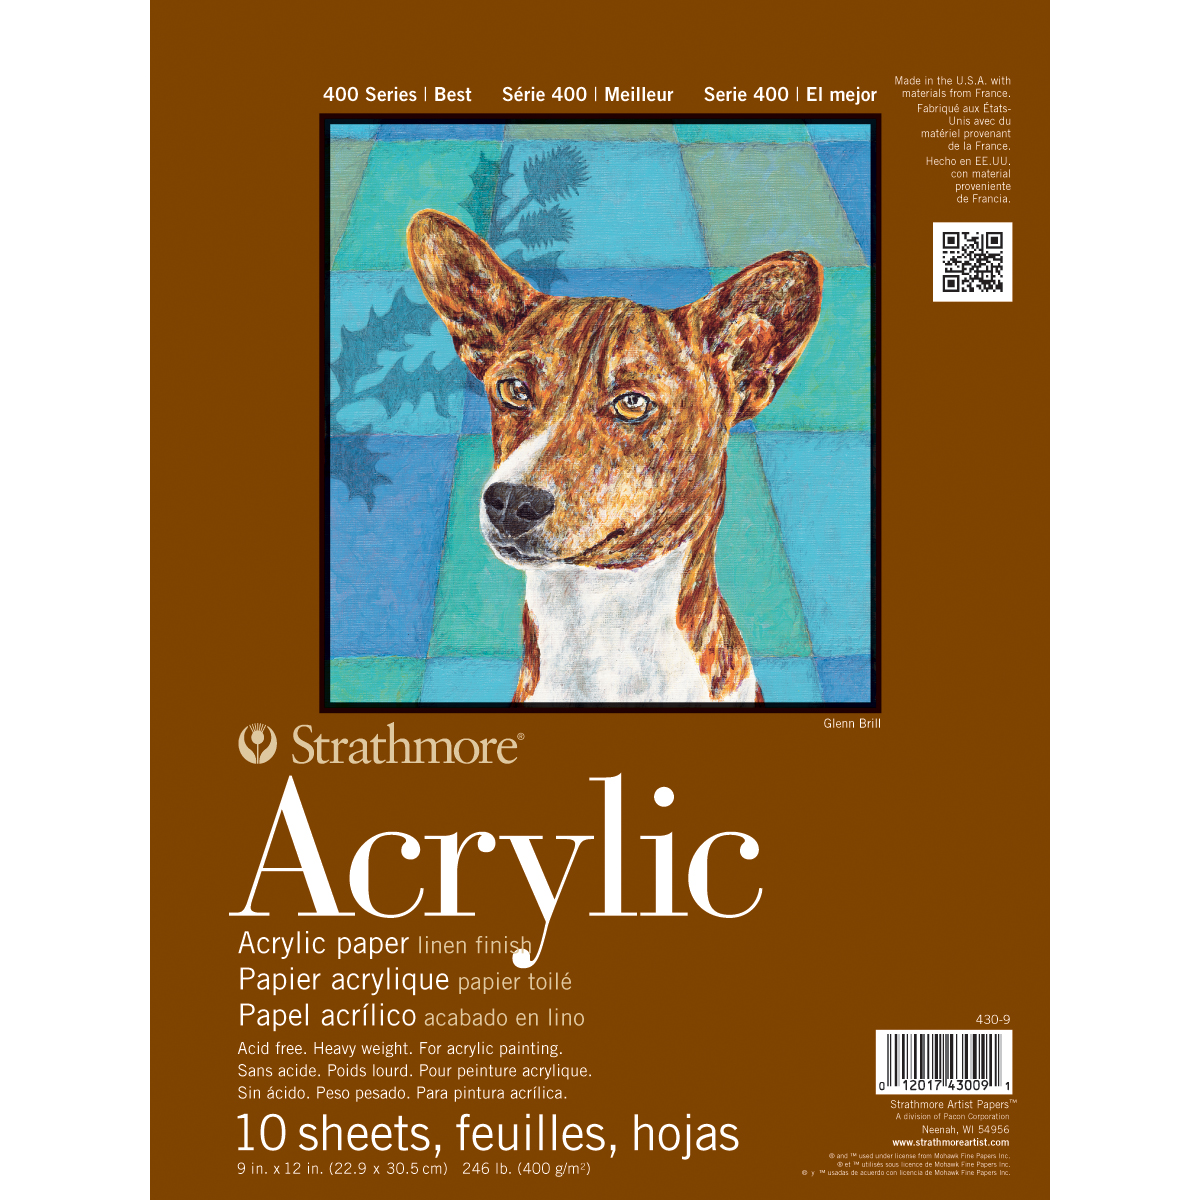 "Strathmore Acrylic Paper Pad, 9"" x 12"", 10 Sheets"